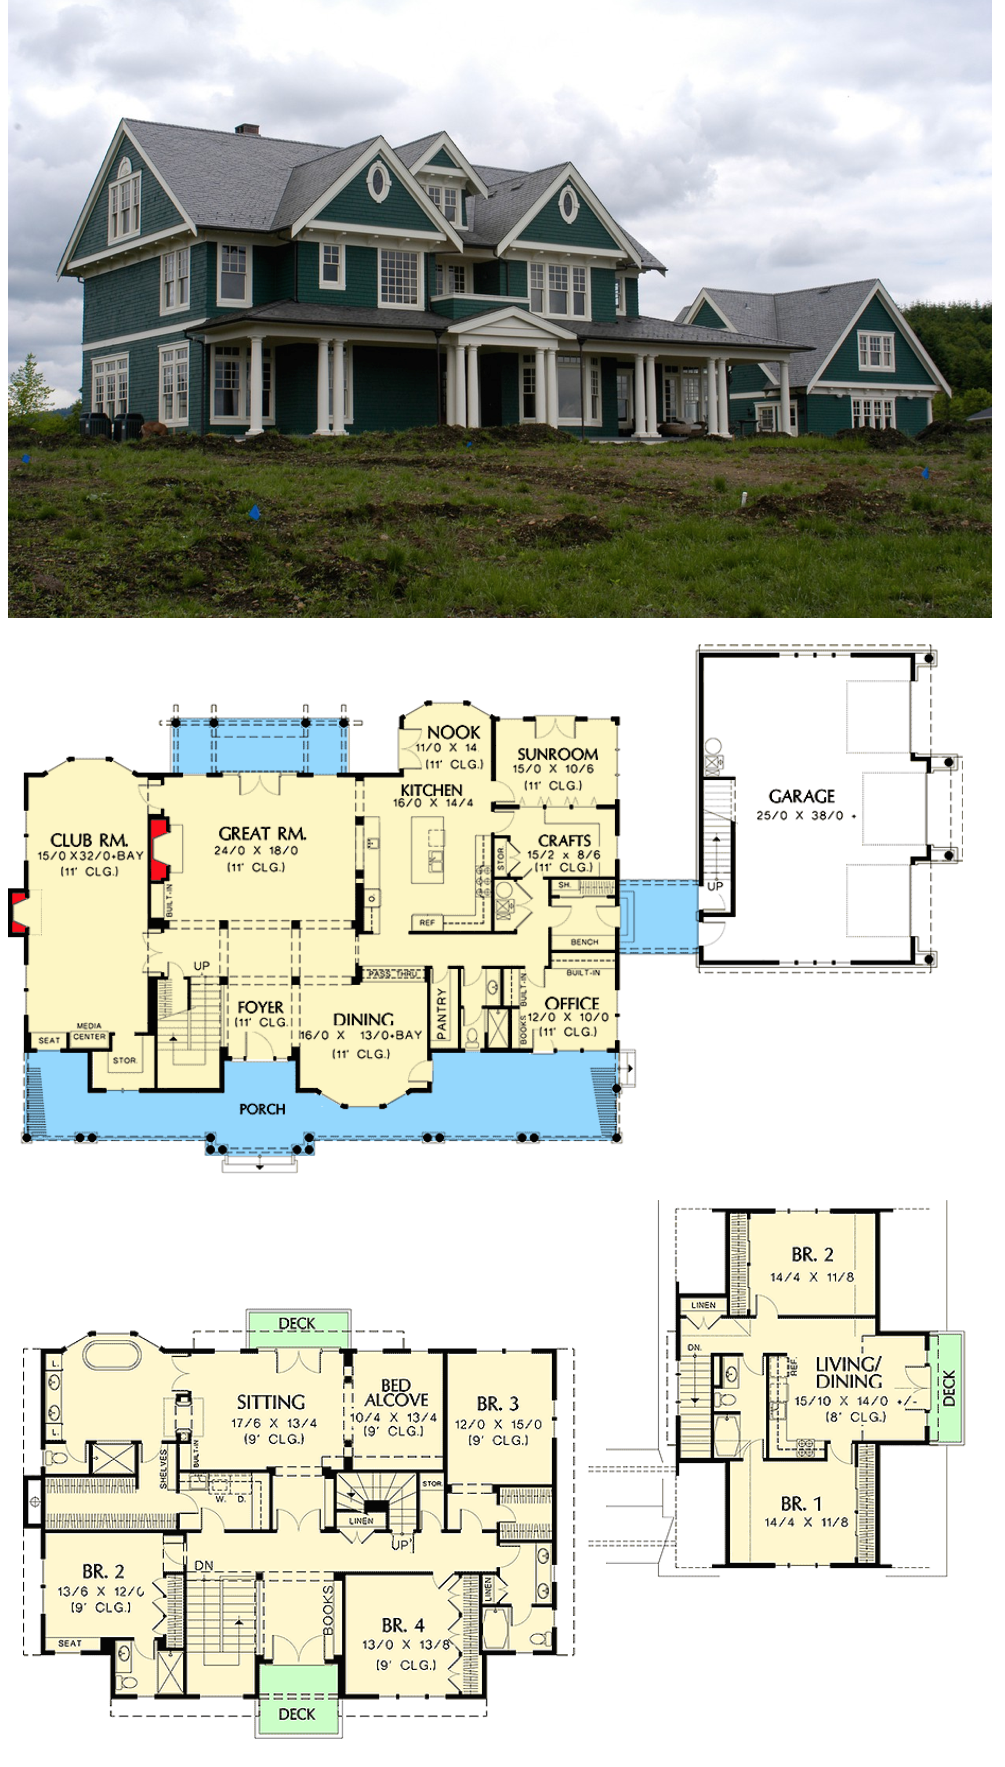 Plan 69078am Farmhouse With Lots Of Amenities House Plans Floor Plans Dream House Plans